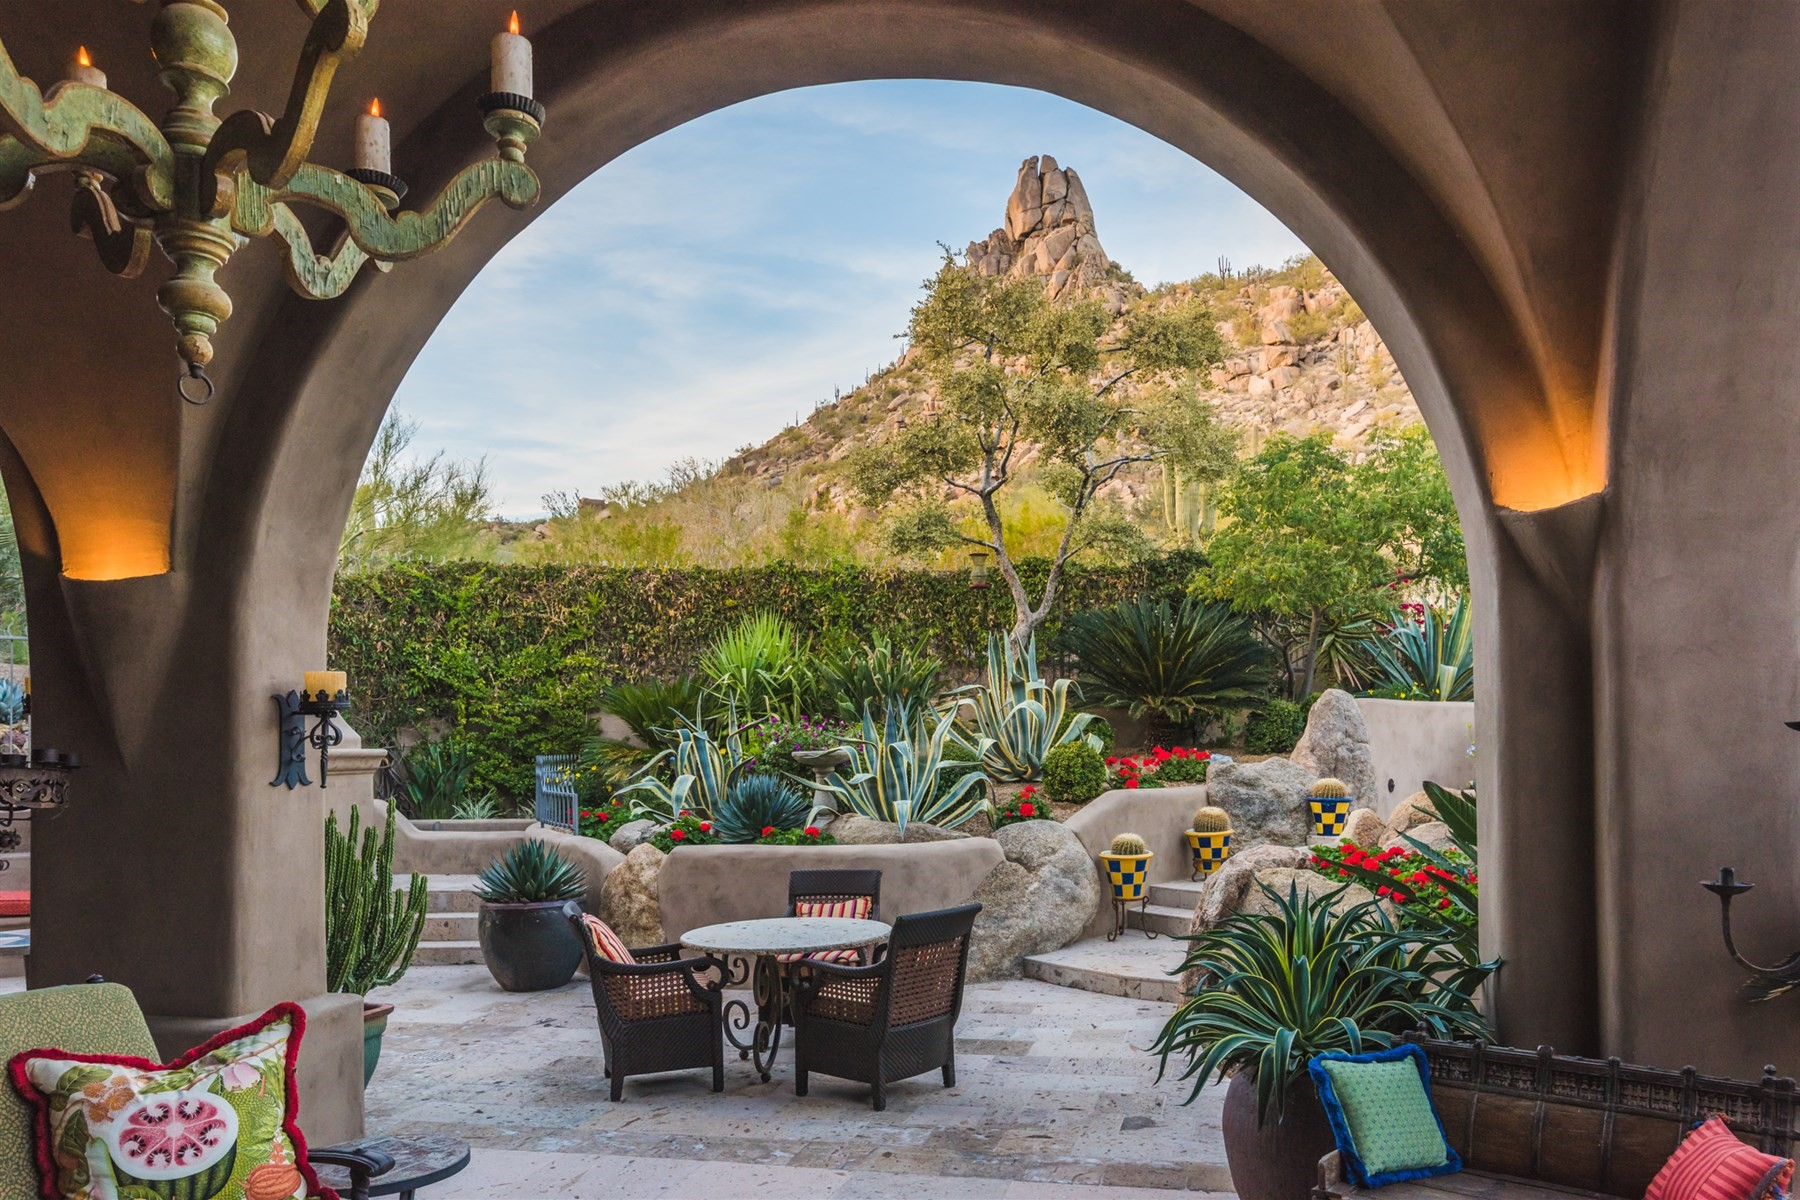 Single Family Home for Sale at Spectacular home nestled at the base of Pinnacle Peak 10040 E HAPPY VALLEY RD 787 Scottsdale, Arizona 85255 United States